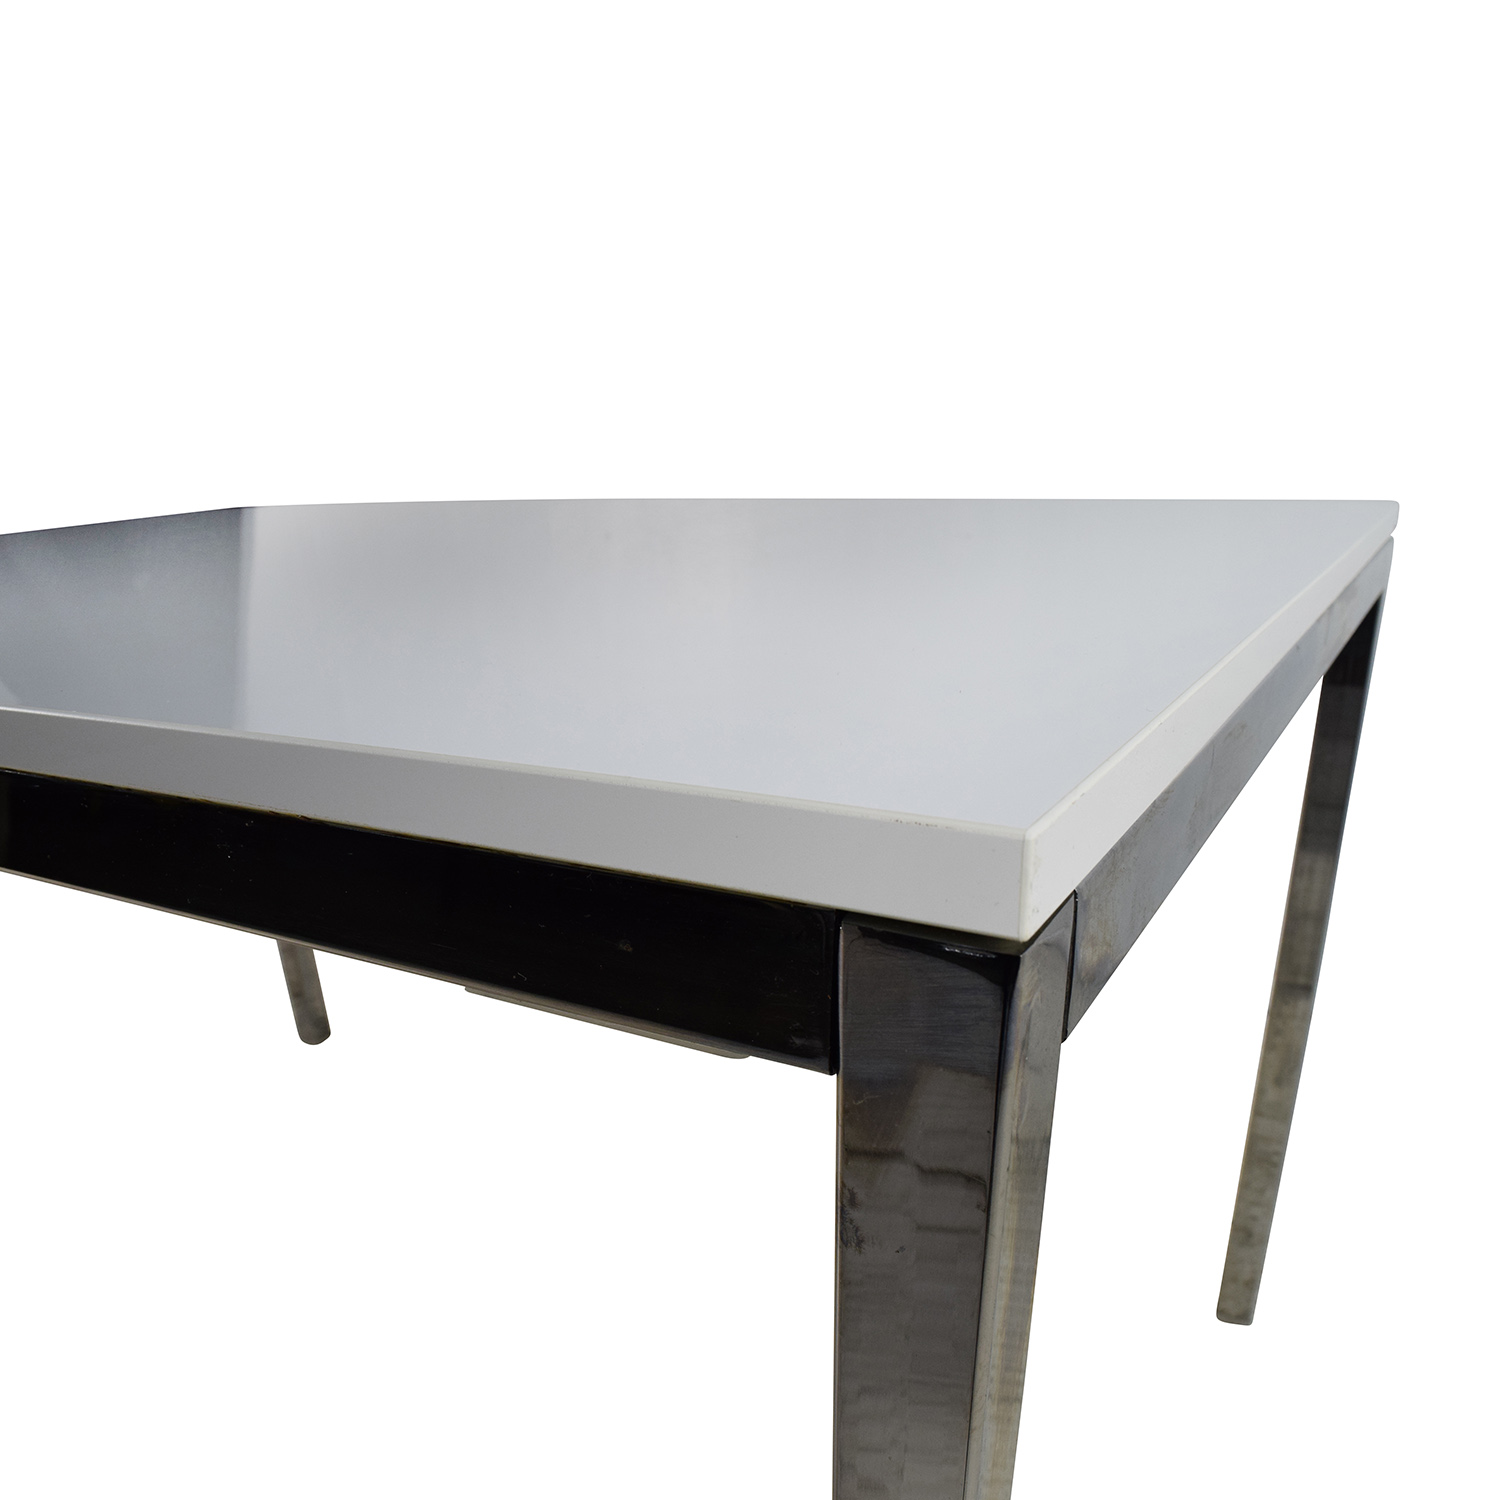 57% OFF IKEA IKEA White Top Dining Table with Silver Chrome Legs